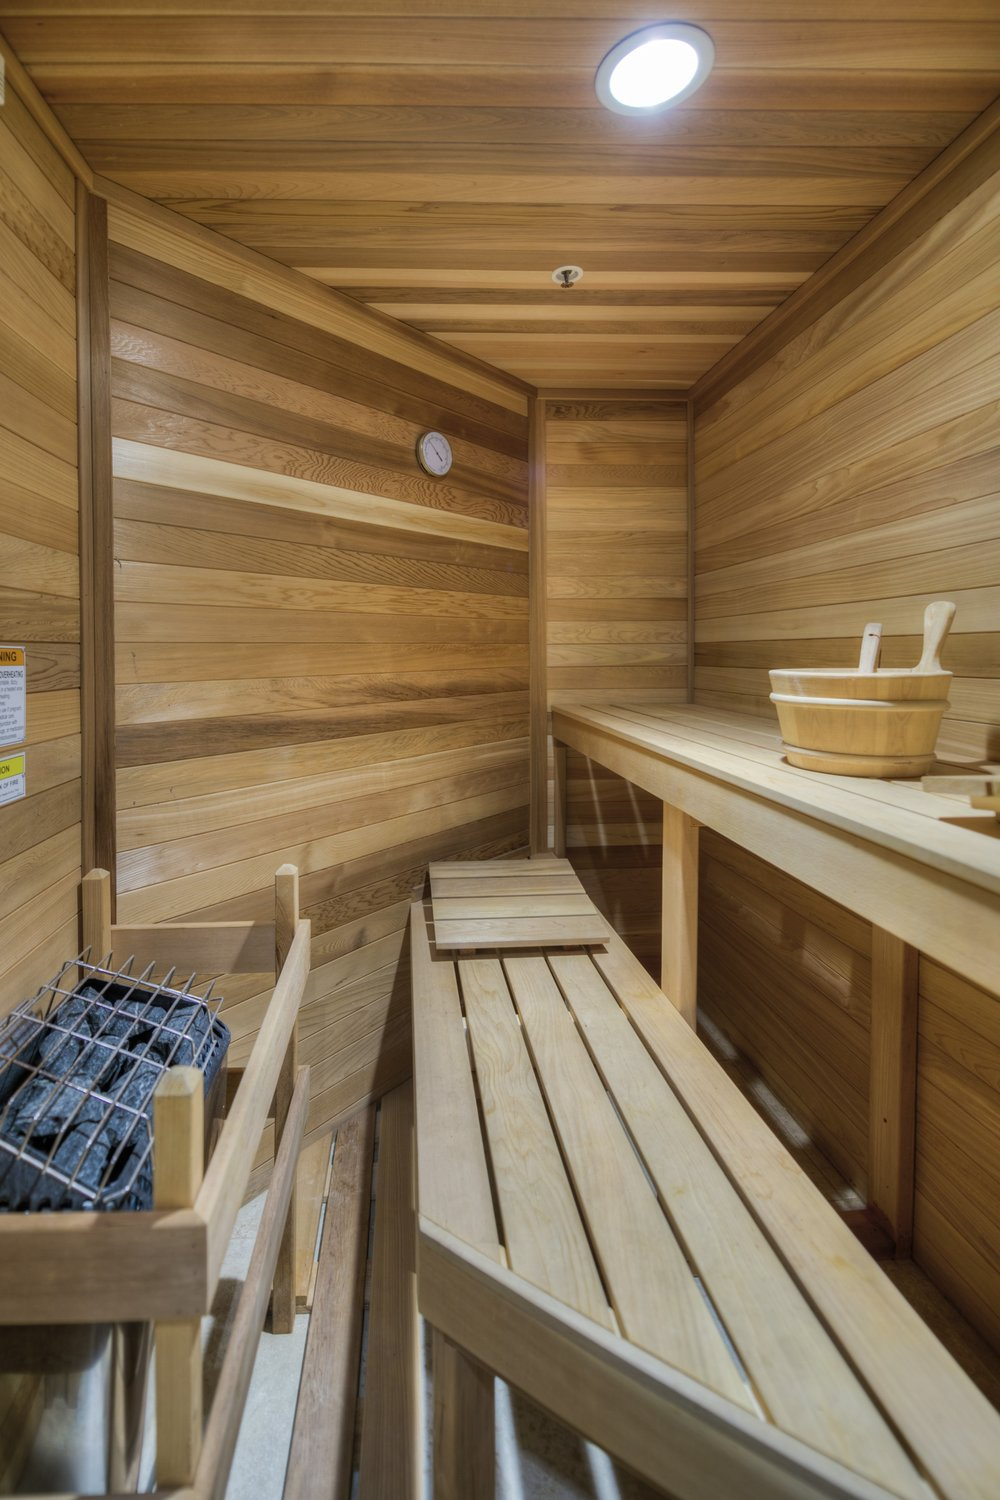 Our infra-red sauna is a great addition to a workout or just a great way to relax, unwind and meditate.